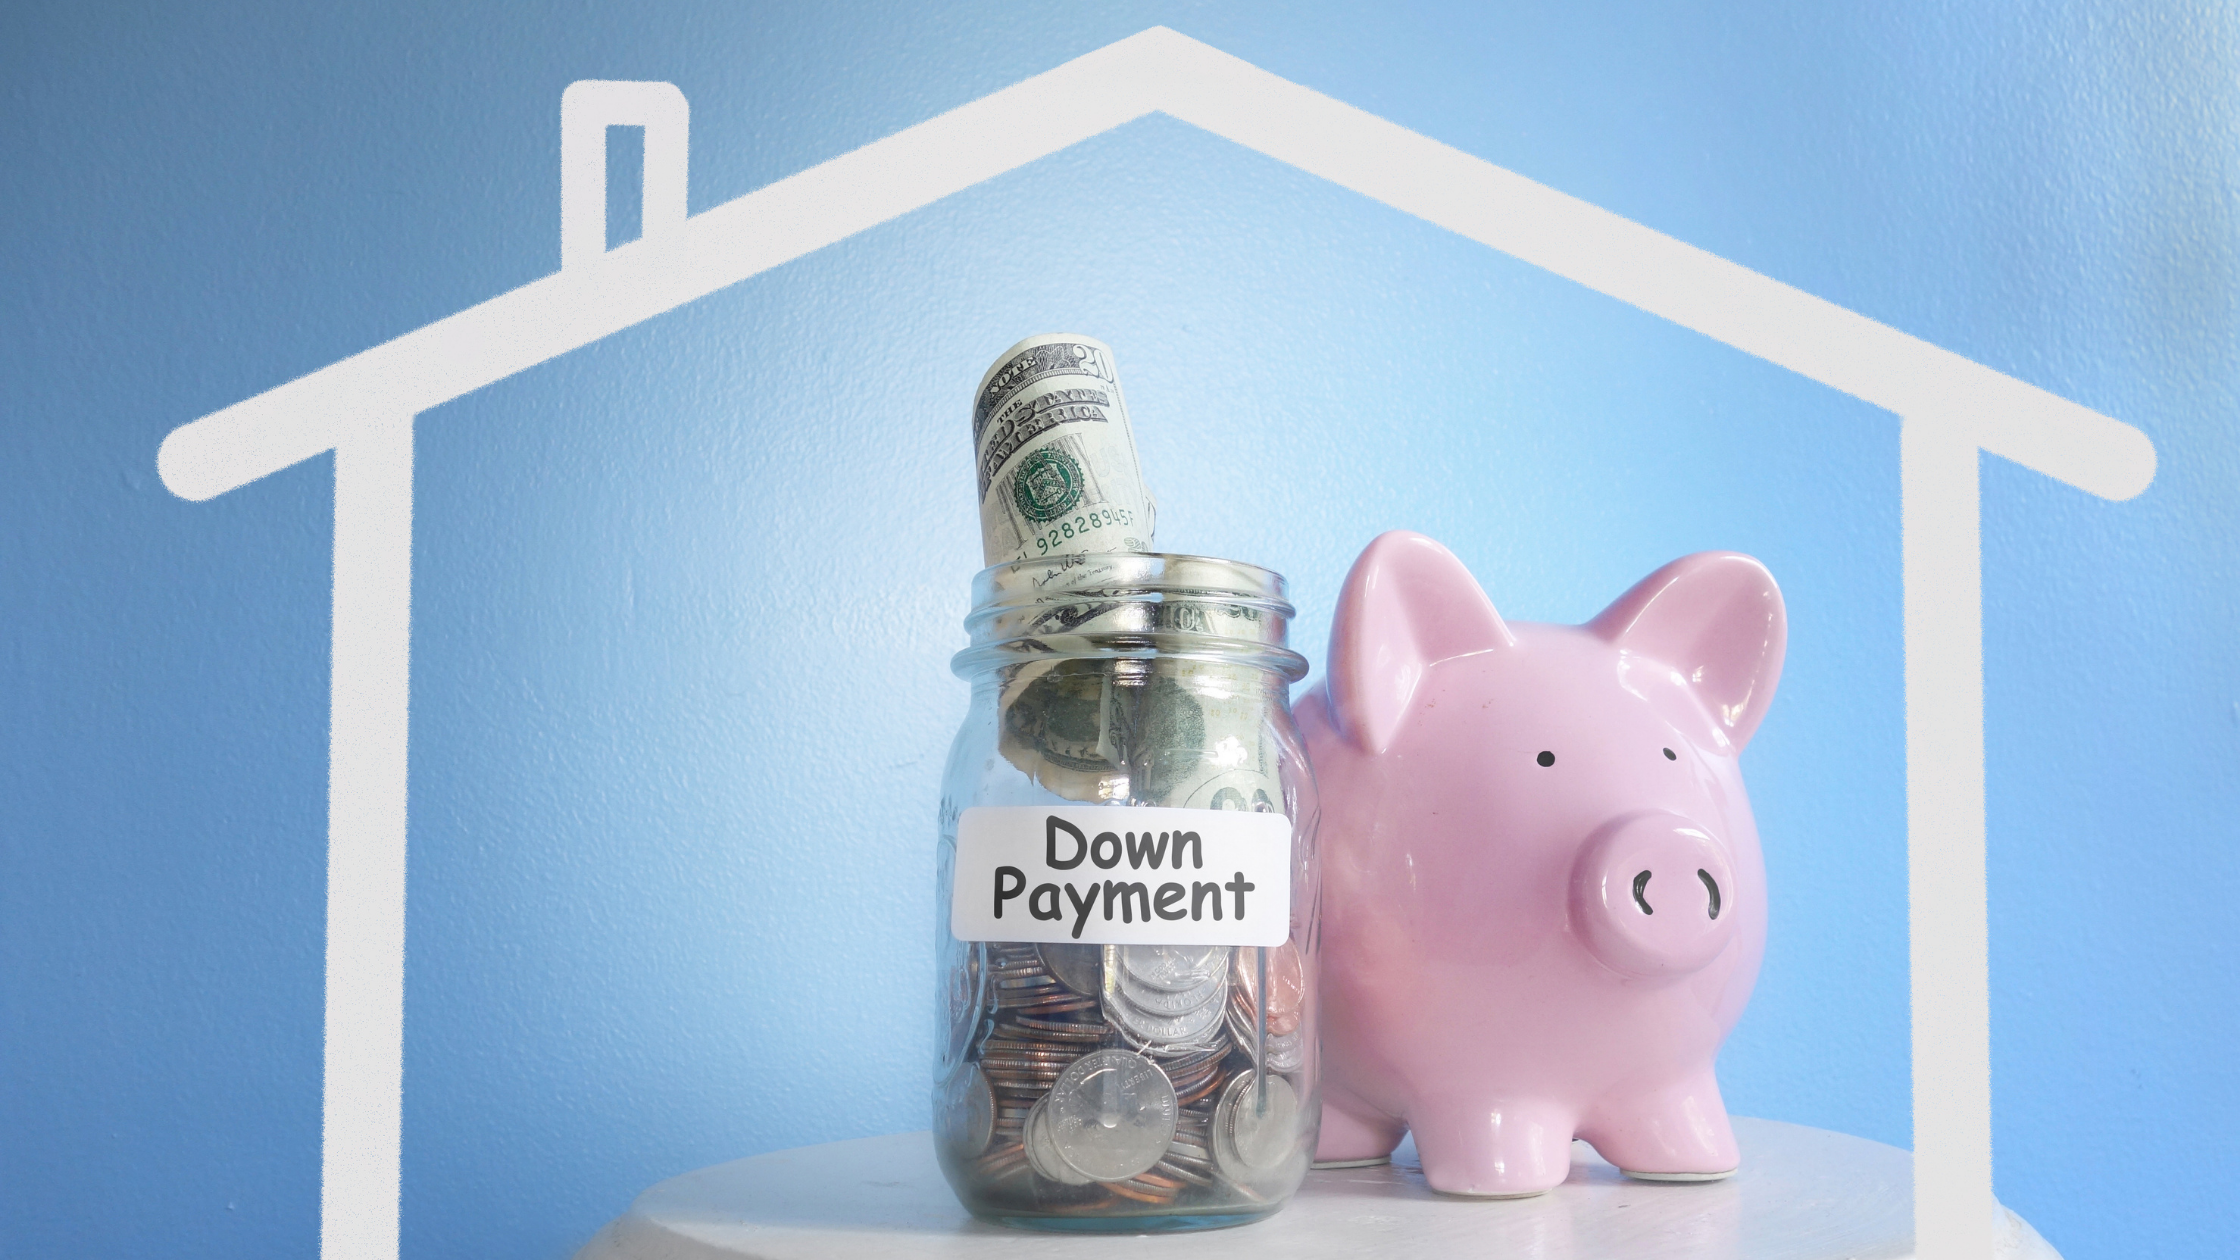 Down Payment Savings Tips to Make your Home Buying Dream a Reality!